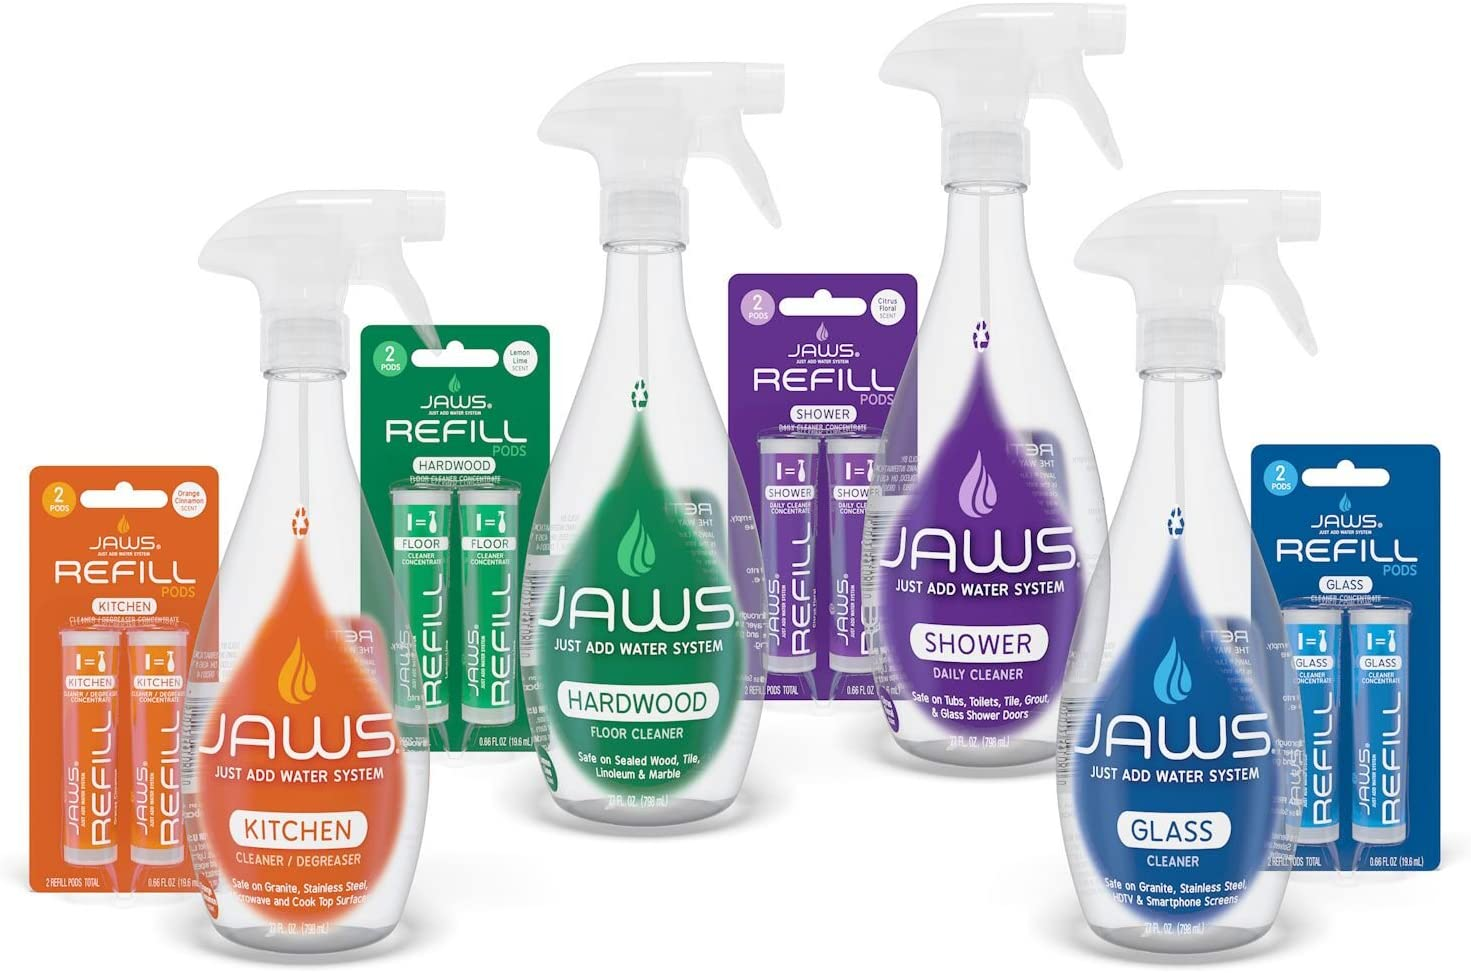 JAWS Home Cleaning Kit   Kitchen, Glass, Shower and Hardwood   2 Refill Pods of Each Included. Non-Toxic and Eco-Friendly Cleaning Products. Refill and Reuse.